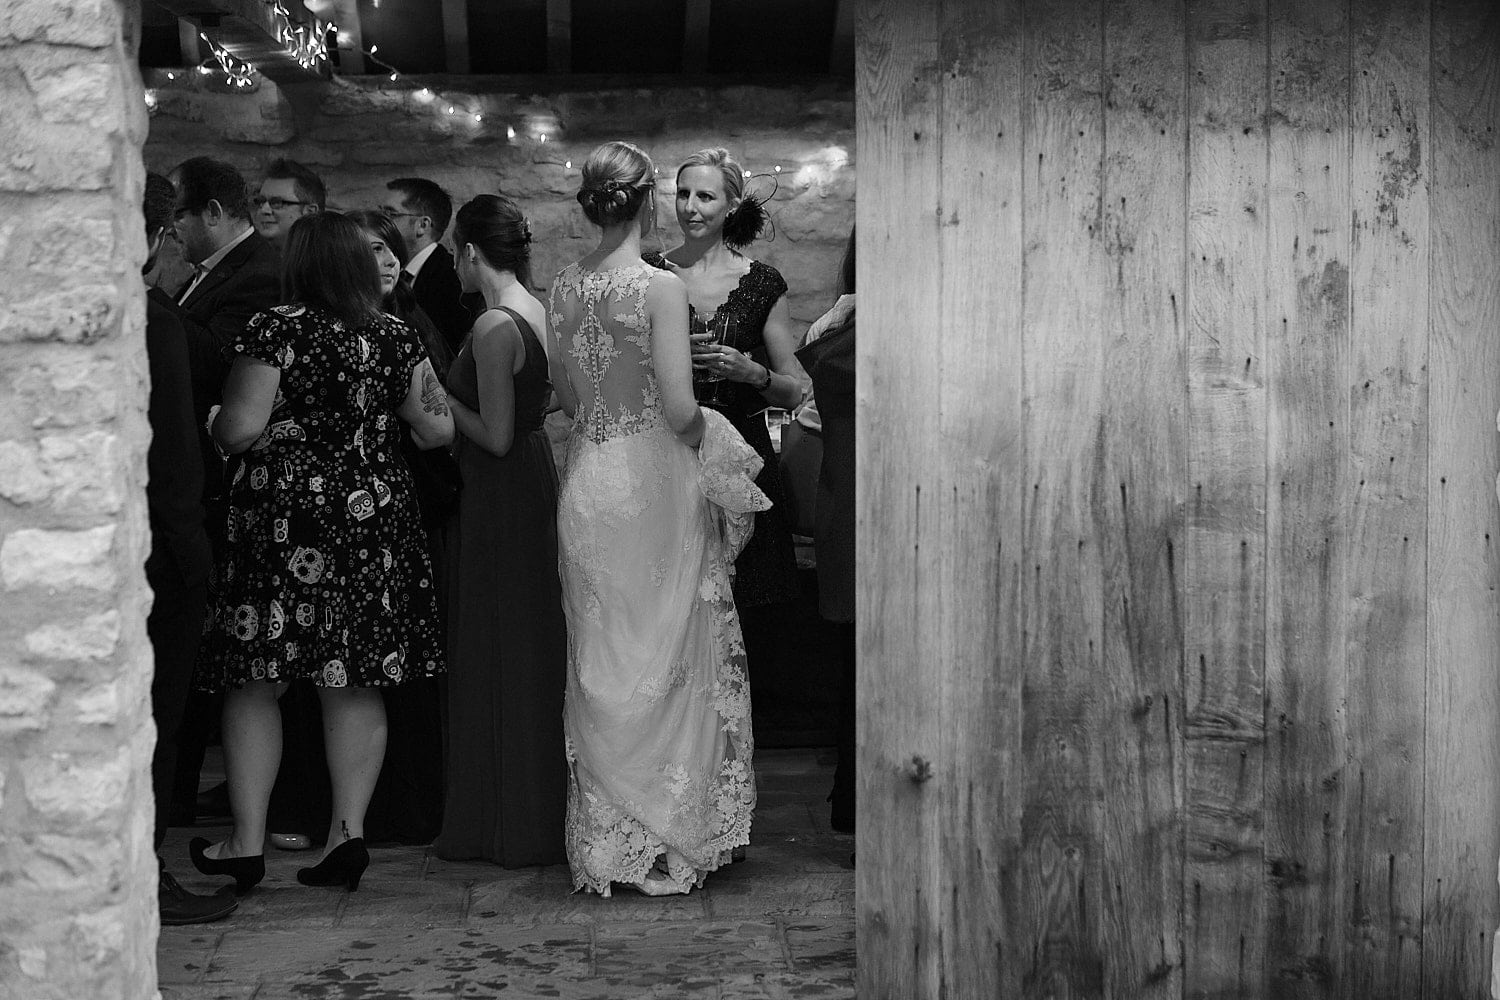 a bride chatting with friends